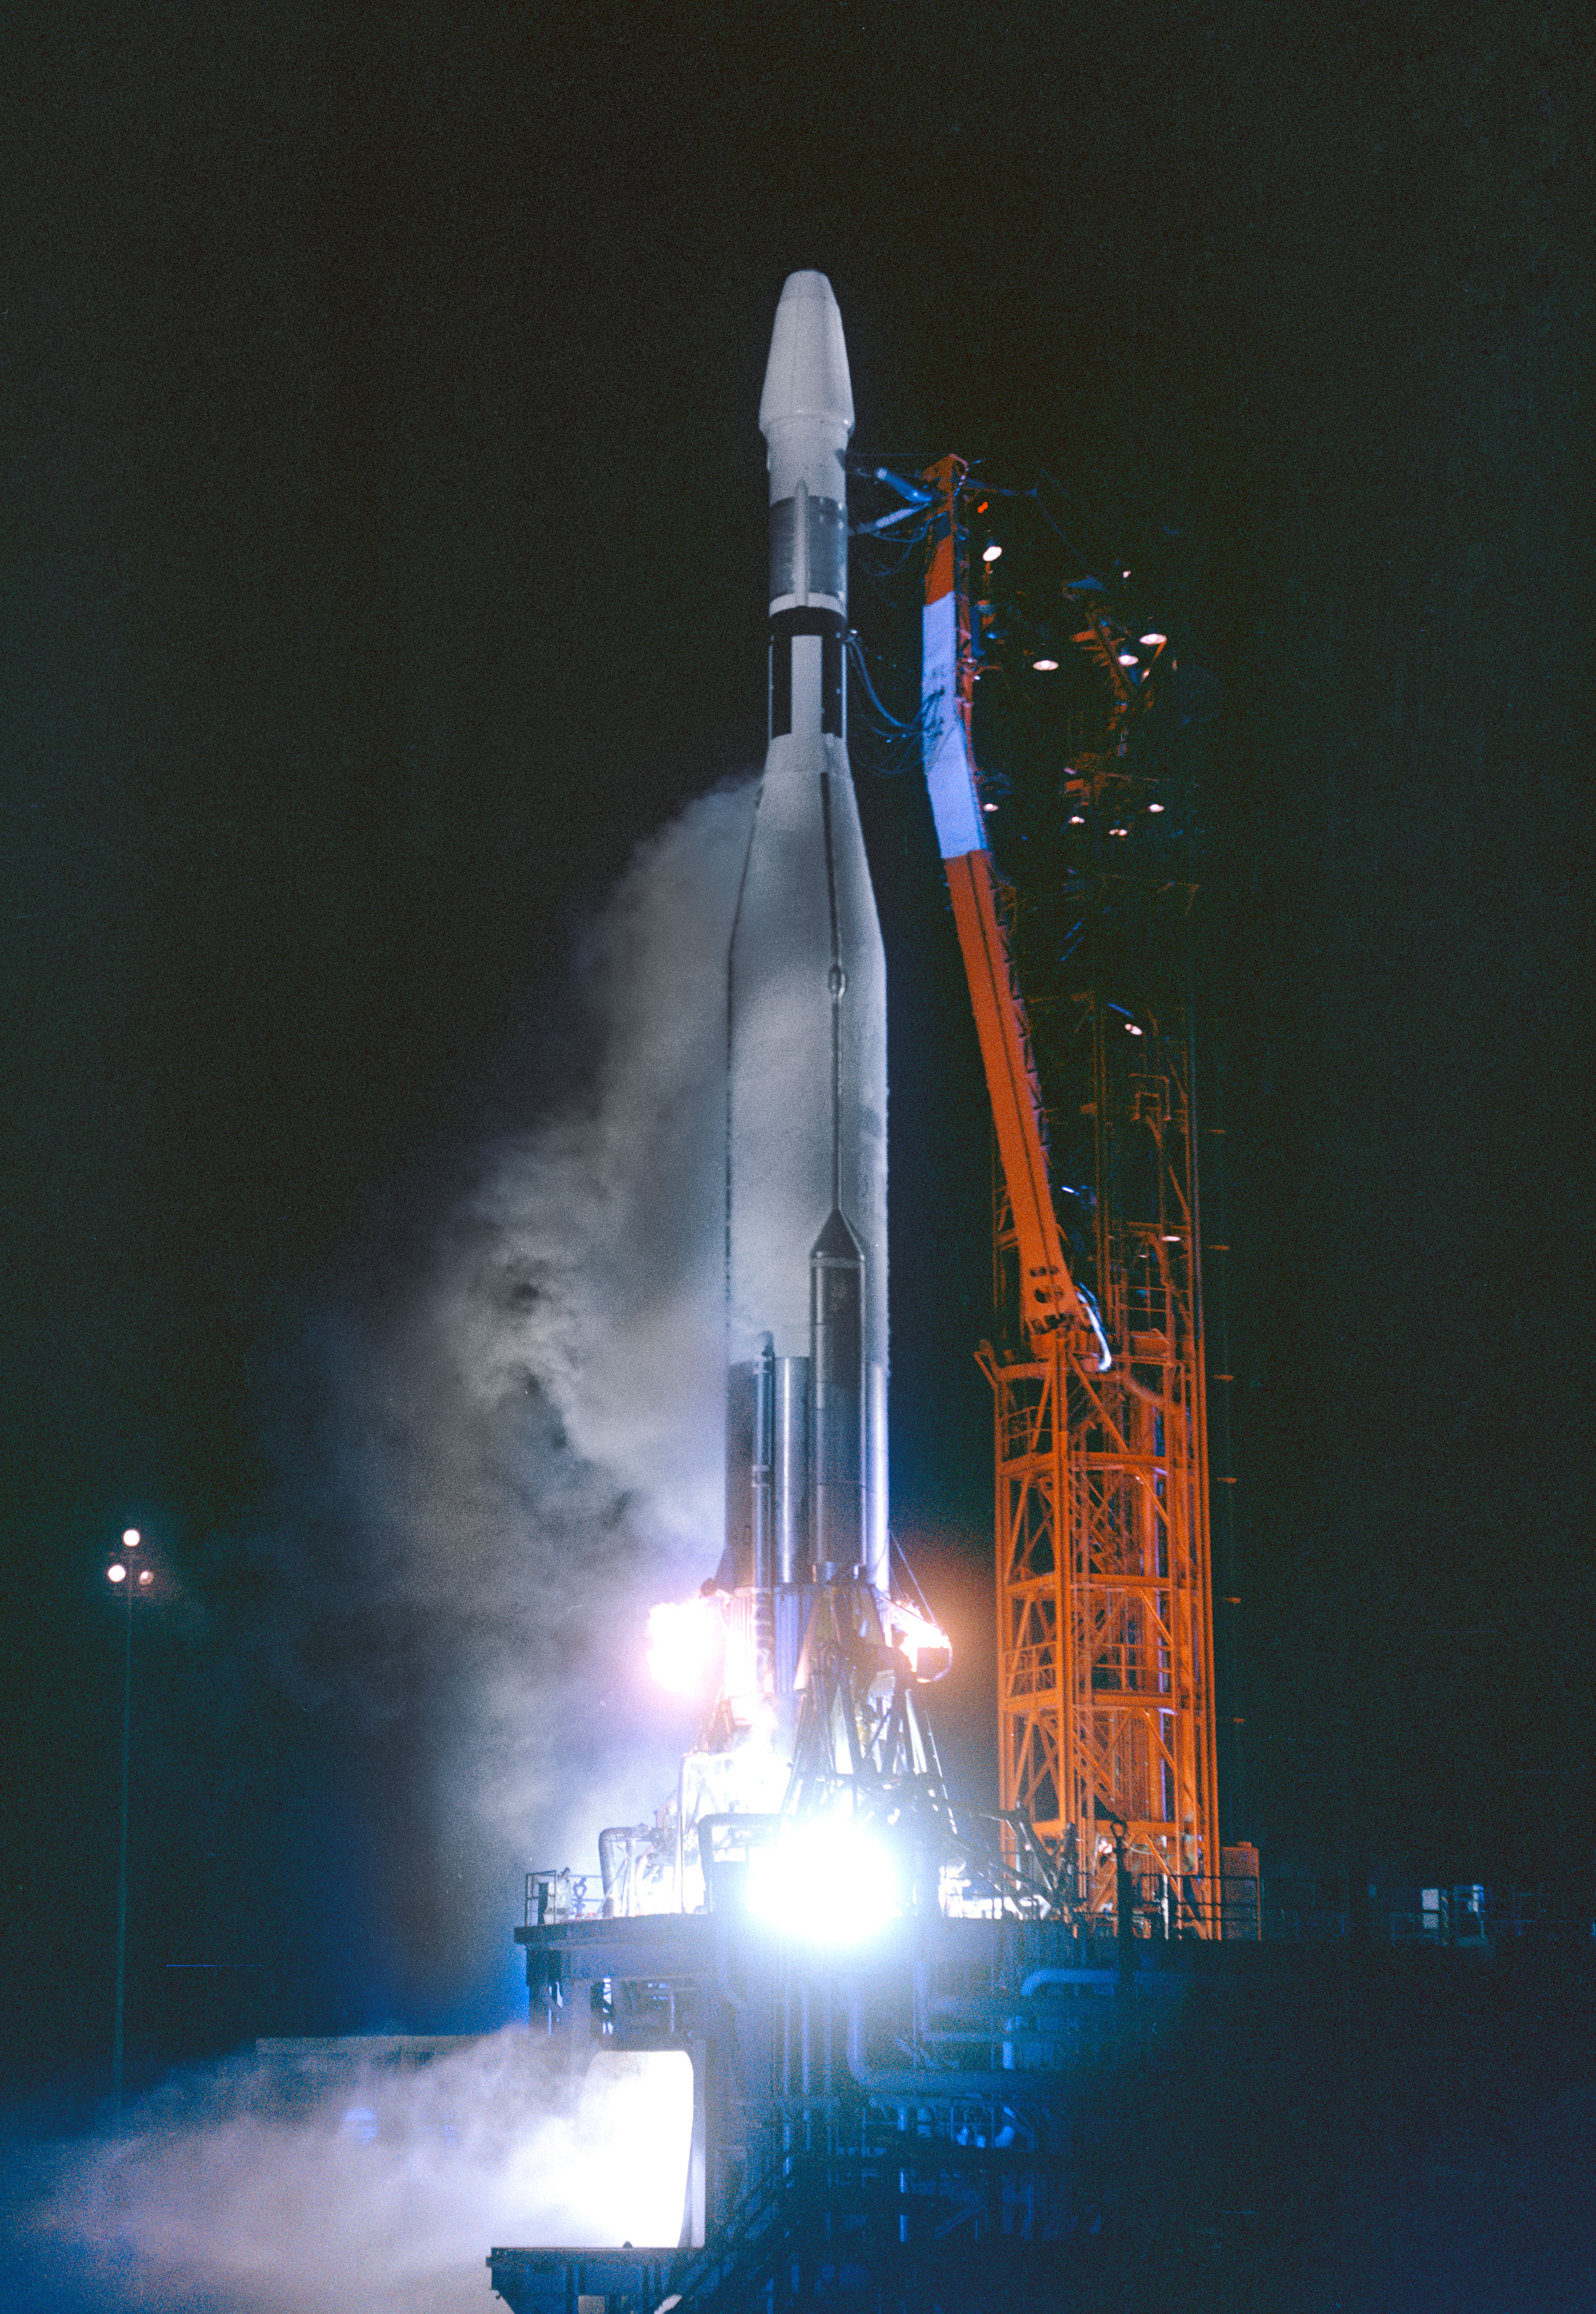 mariner 2 space mission - photo #28